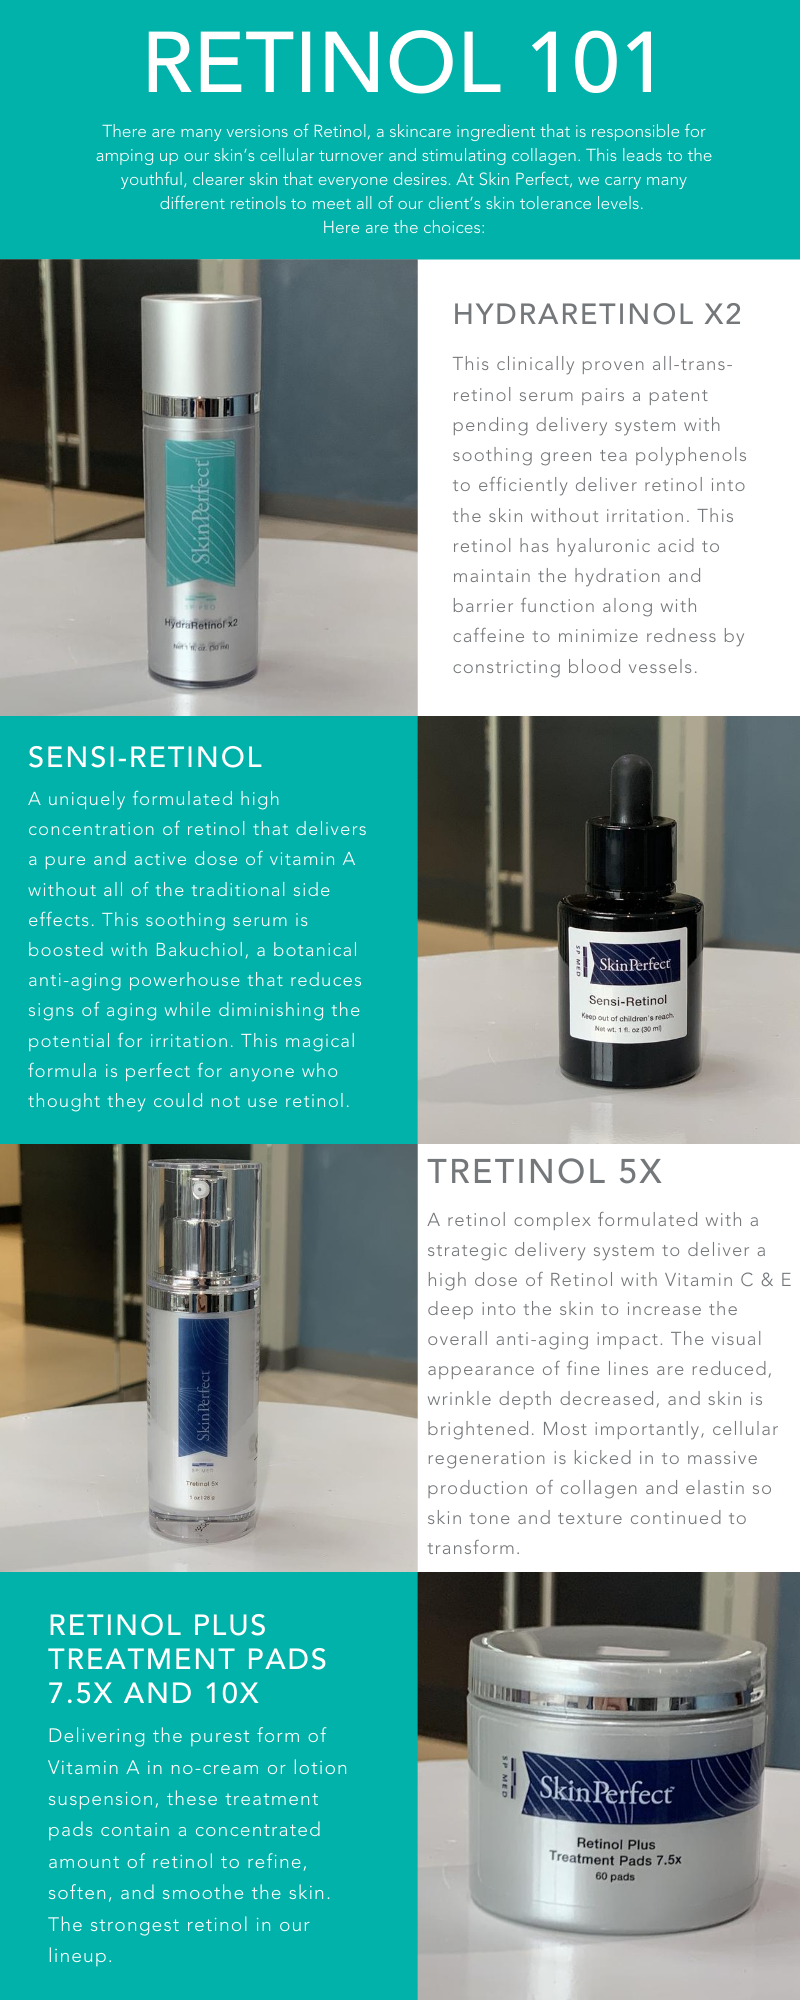 Image of Retinol 101 Infographic